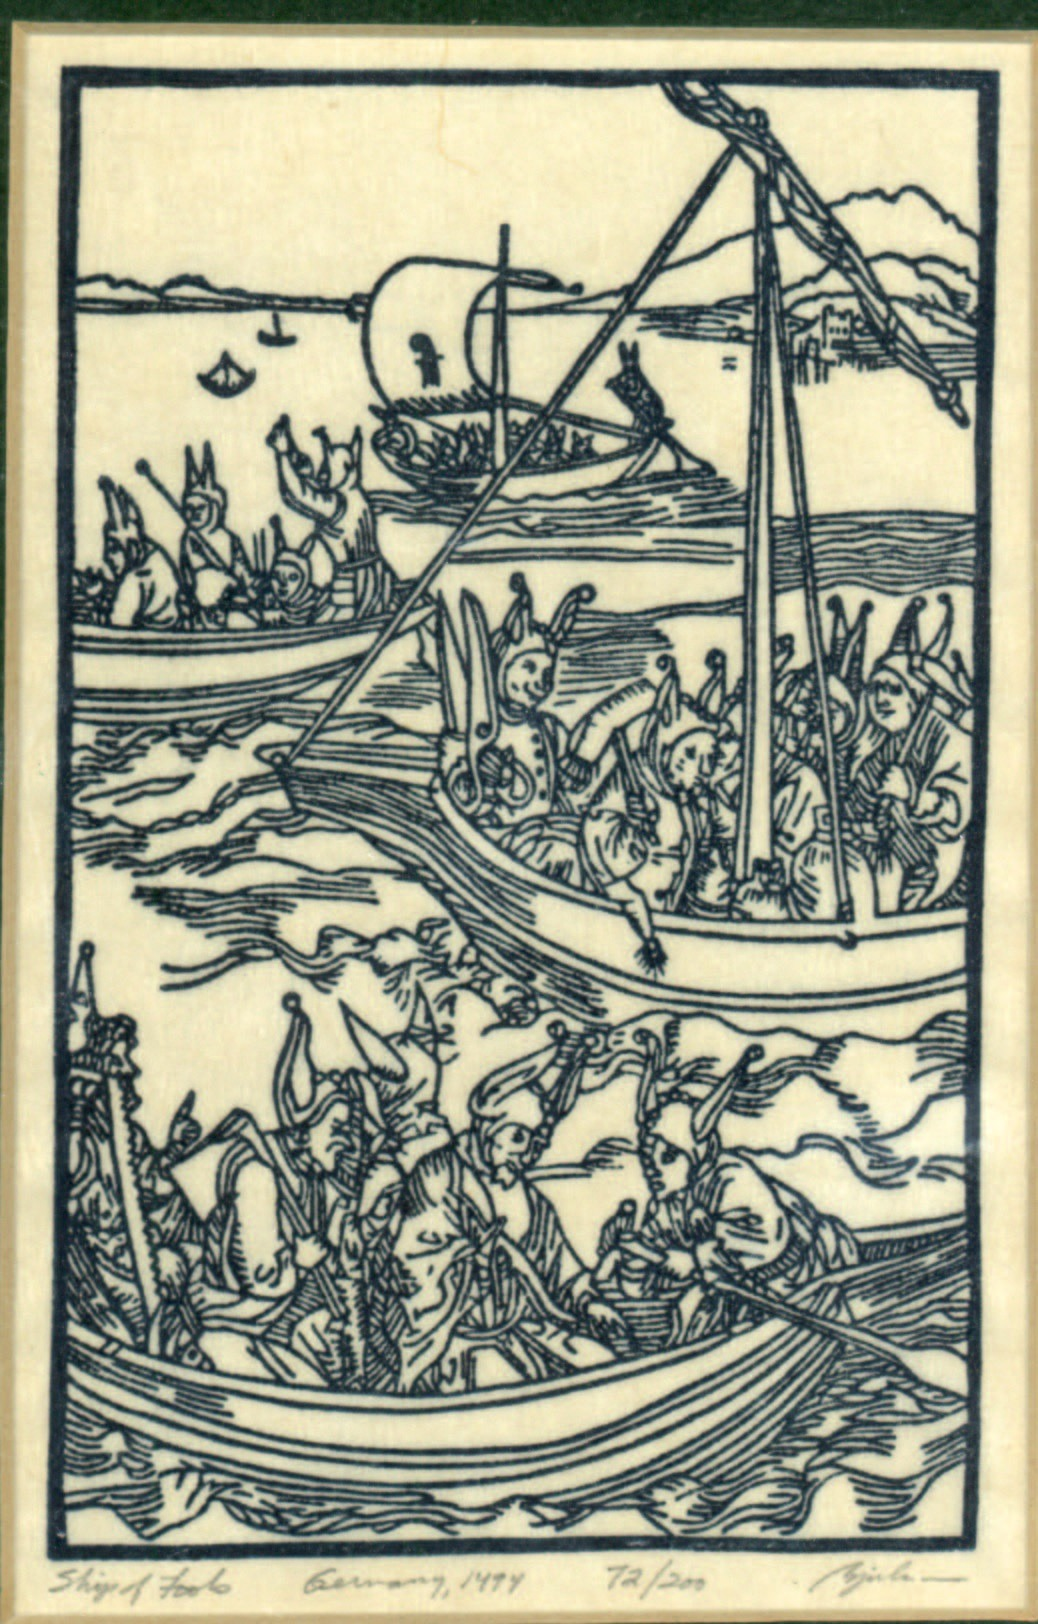 Albrecht Dürer, Ship of Fools, 1494